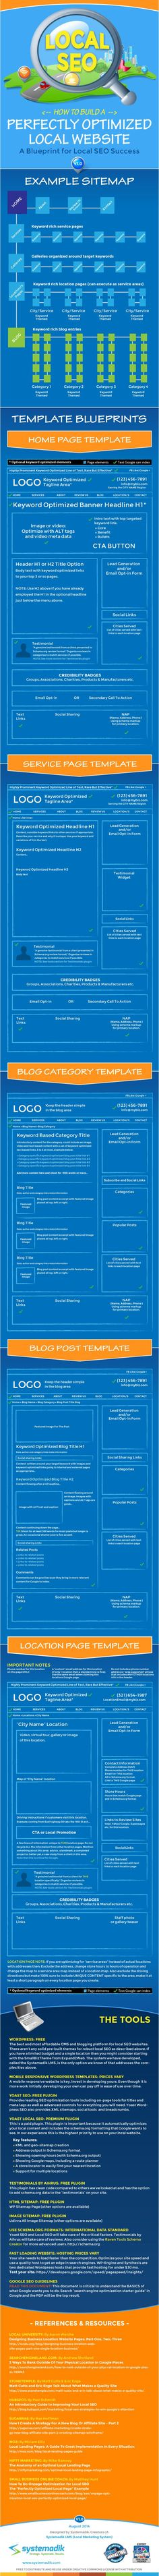 A Visual Guide to Local #SEO for Small Business Websites